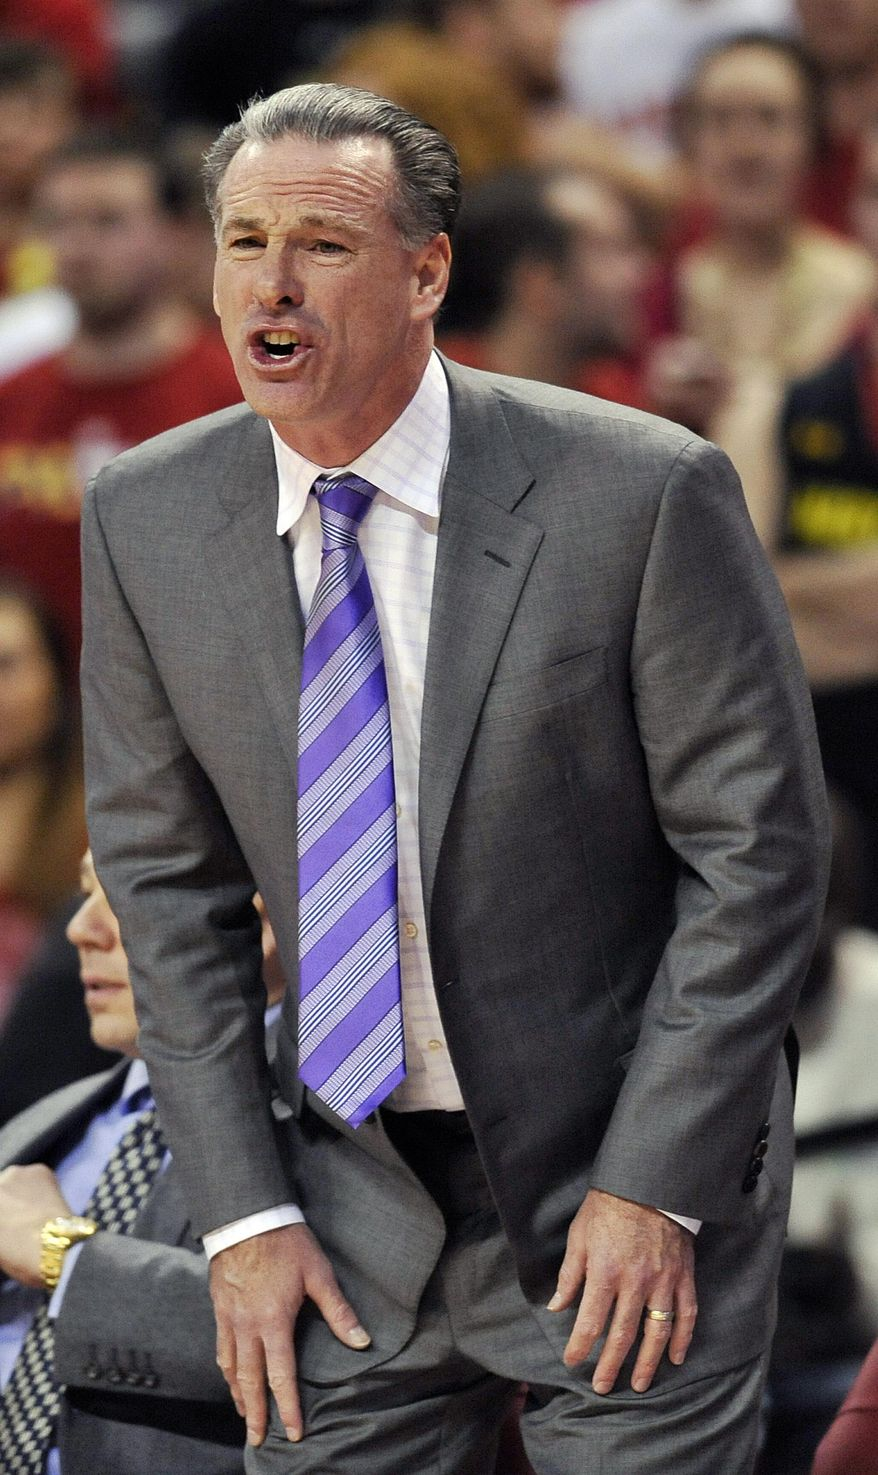 Pittsburgh coach Jamie Dixon calls to his team in the second half of an NCAA college basketball game against Maryland, Saturday, Jan. 25, 2014, in College Park, Md. Pittsburgh won 83-79. (AP Photo/Gail Burton)